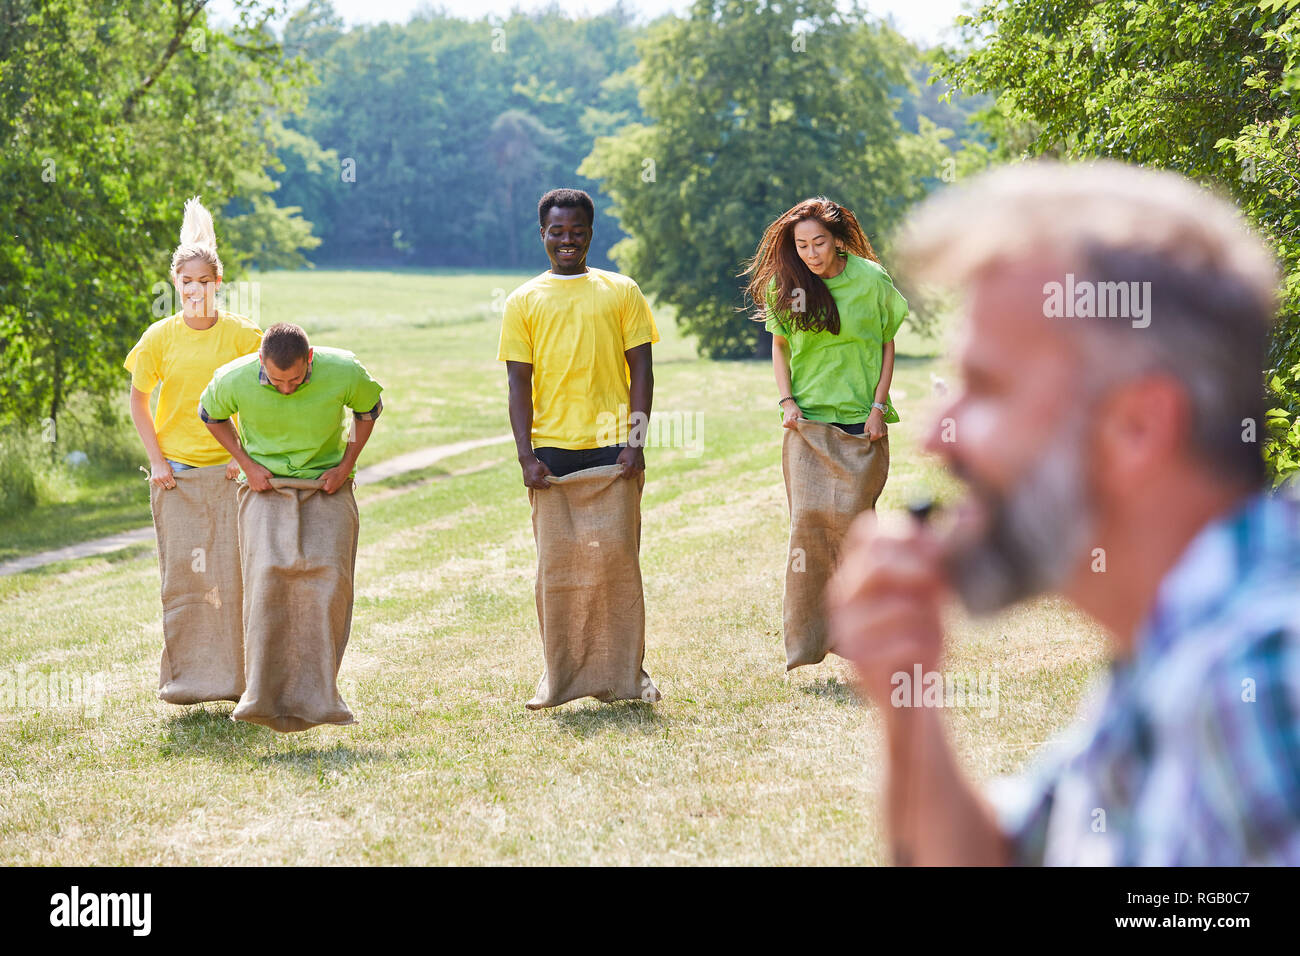 Group during sack race competition as a teambuilding event in summer - Stock Image